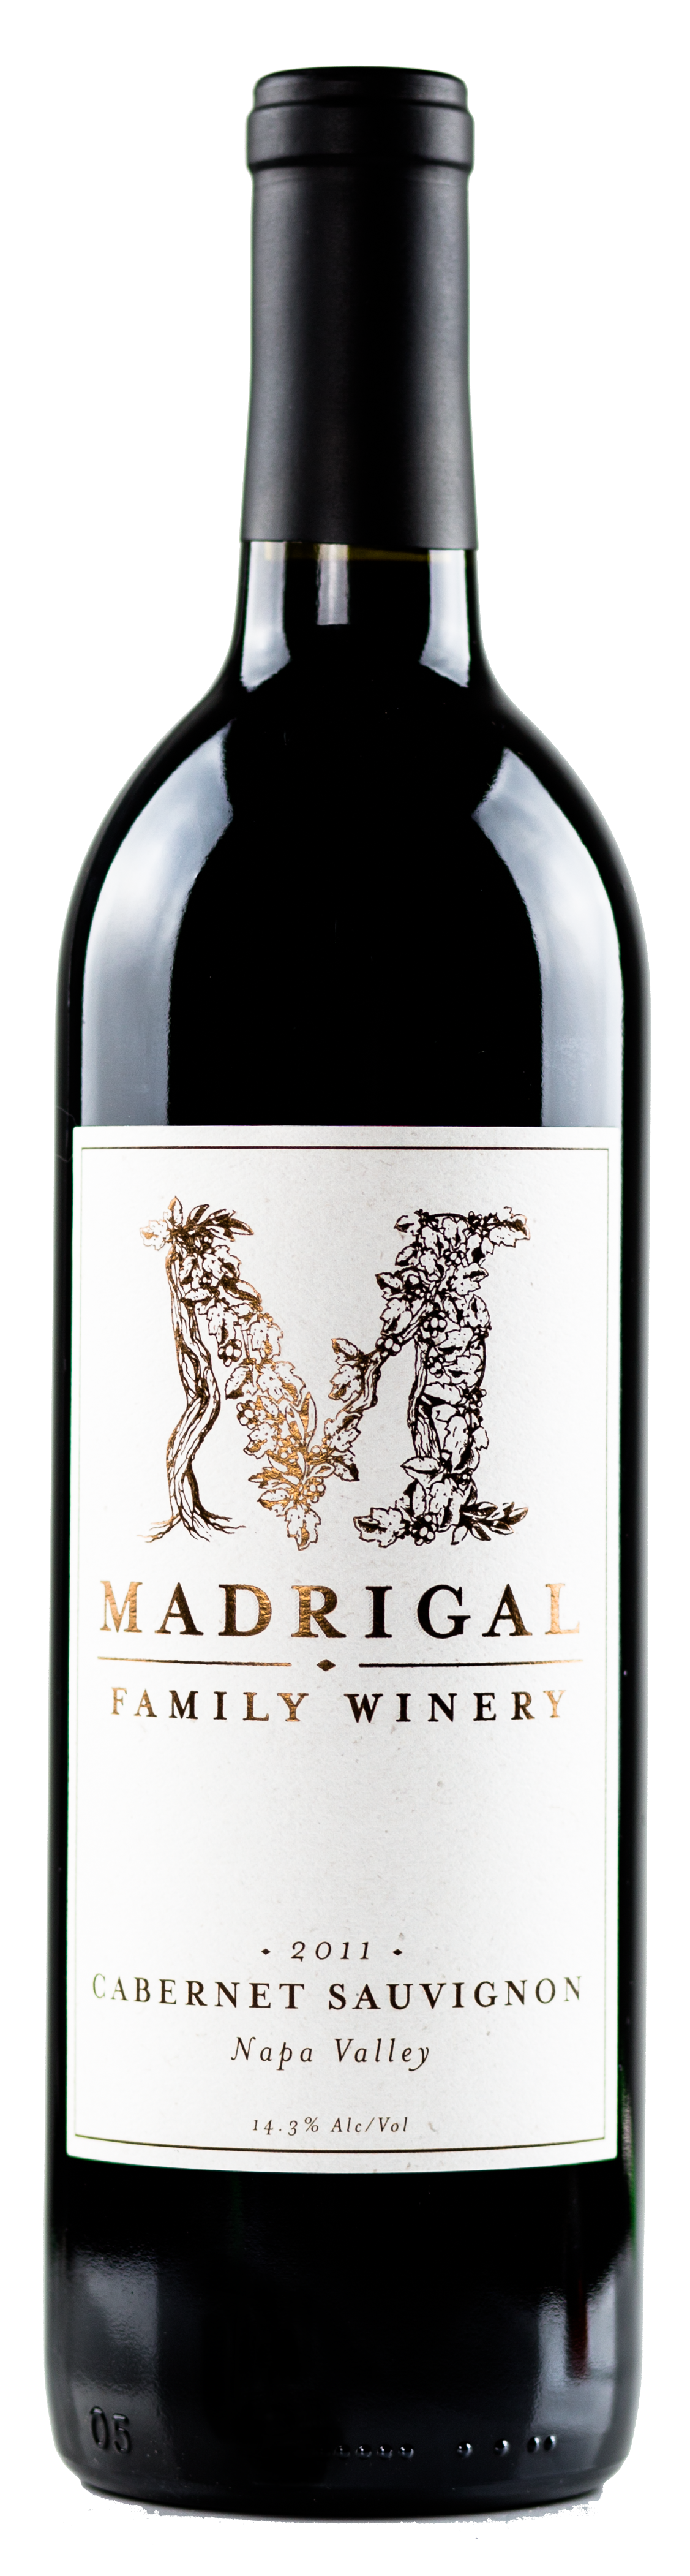 Trade madrigal family winery. Old bottle label png png library download